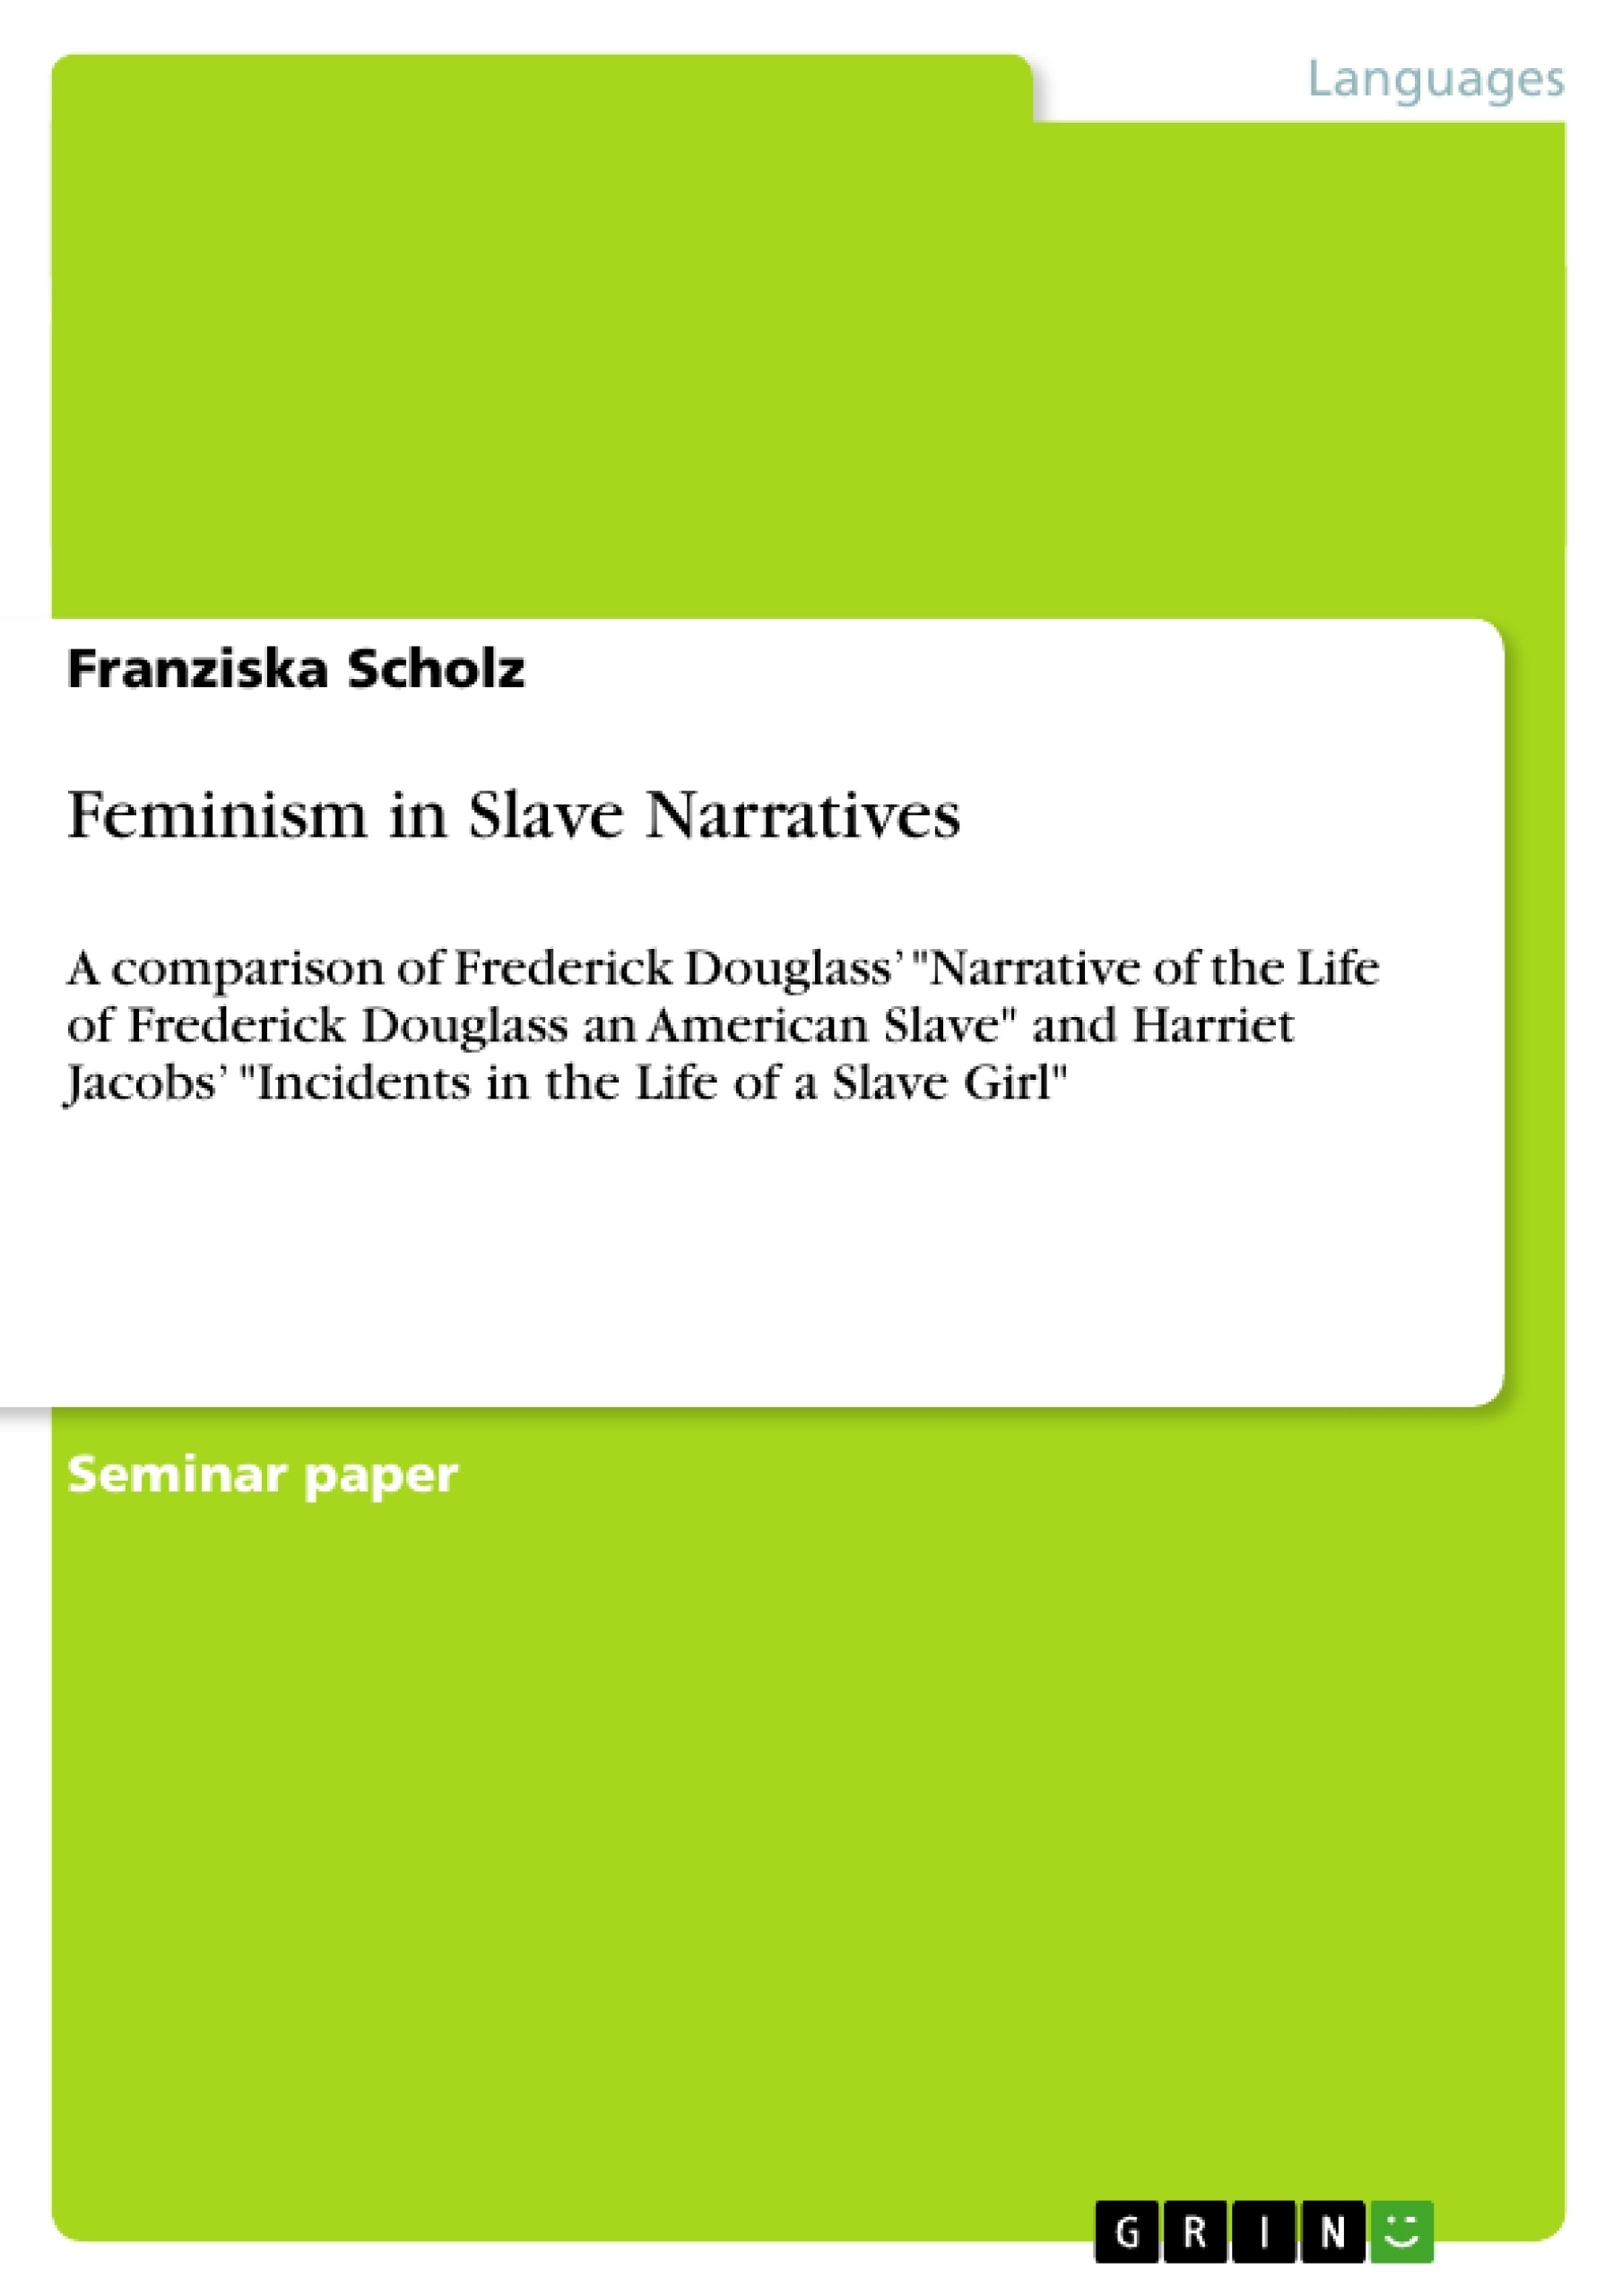 learning to and write frederick douglass essay feminism in  feminism in slave narratives publish your master s thesis upload your own papers earn money and ideas about frederick douglass bookmarks